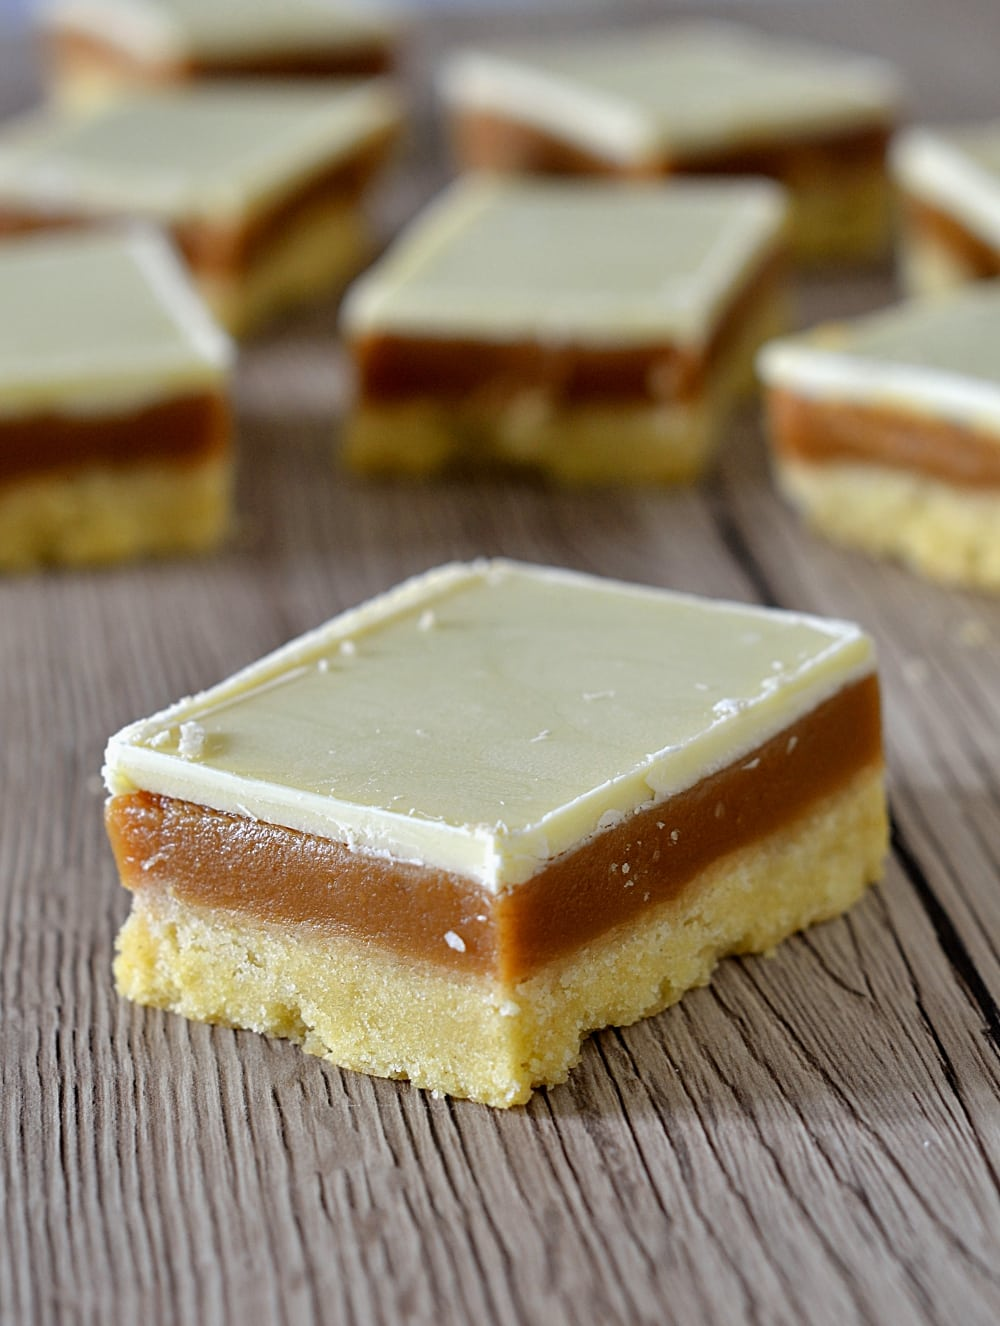 Caramel Slice Recipe - Baking with Granny. Also known as Caramel Shortcake and Millionaires Slice. The traditional Scottish tray bake with a biscuit base, layer of caramel and topped with chocolate.